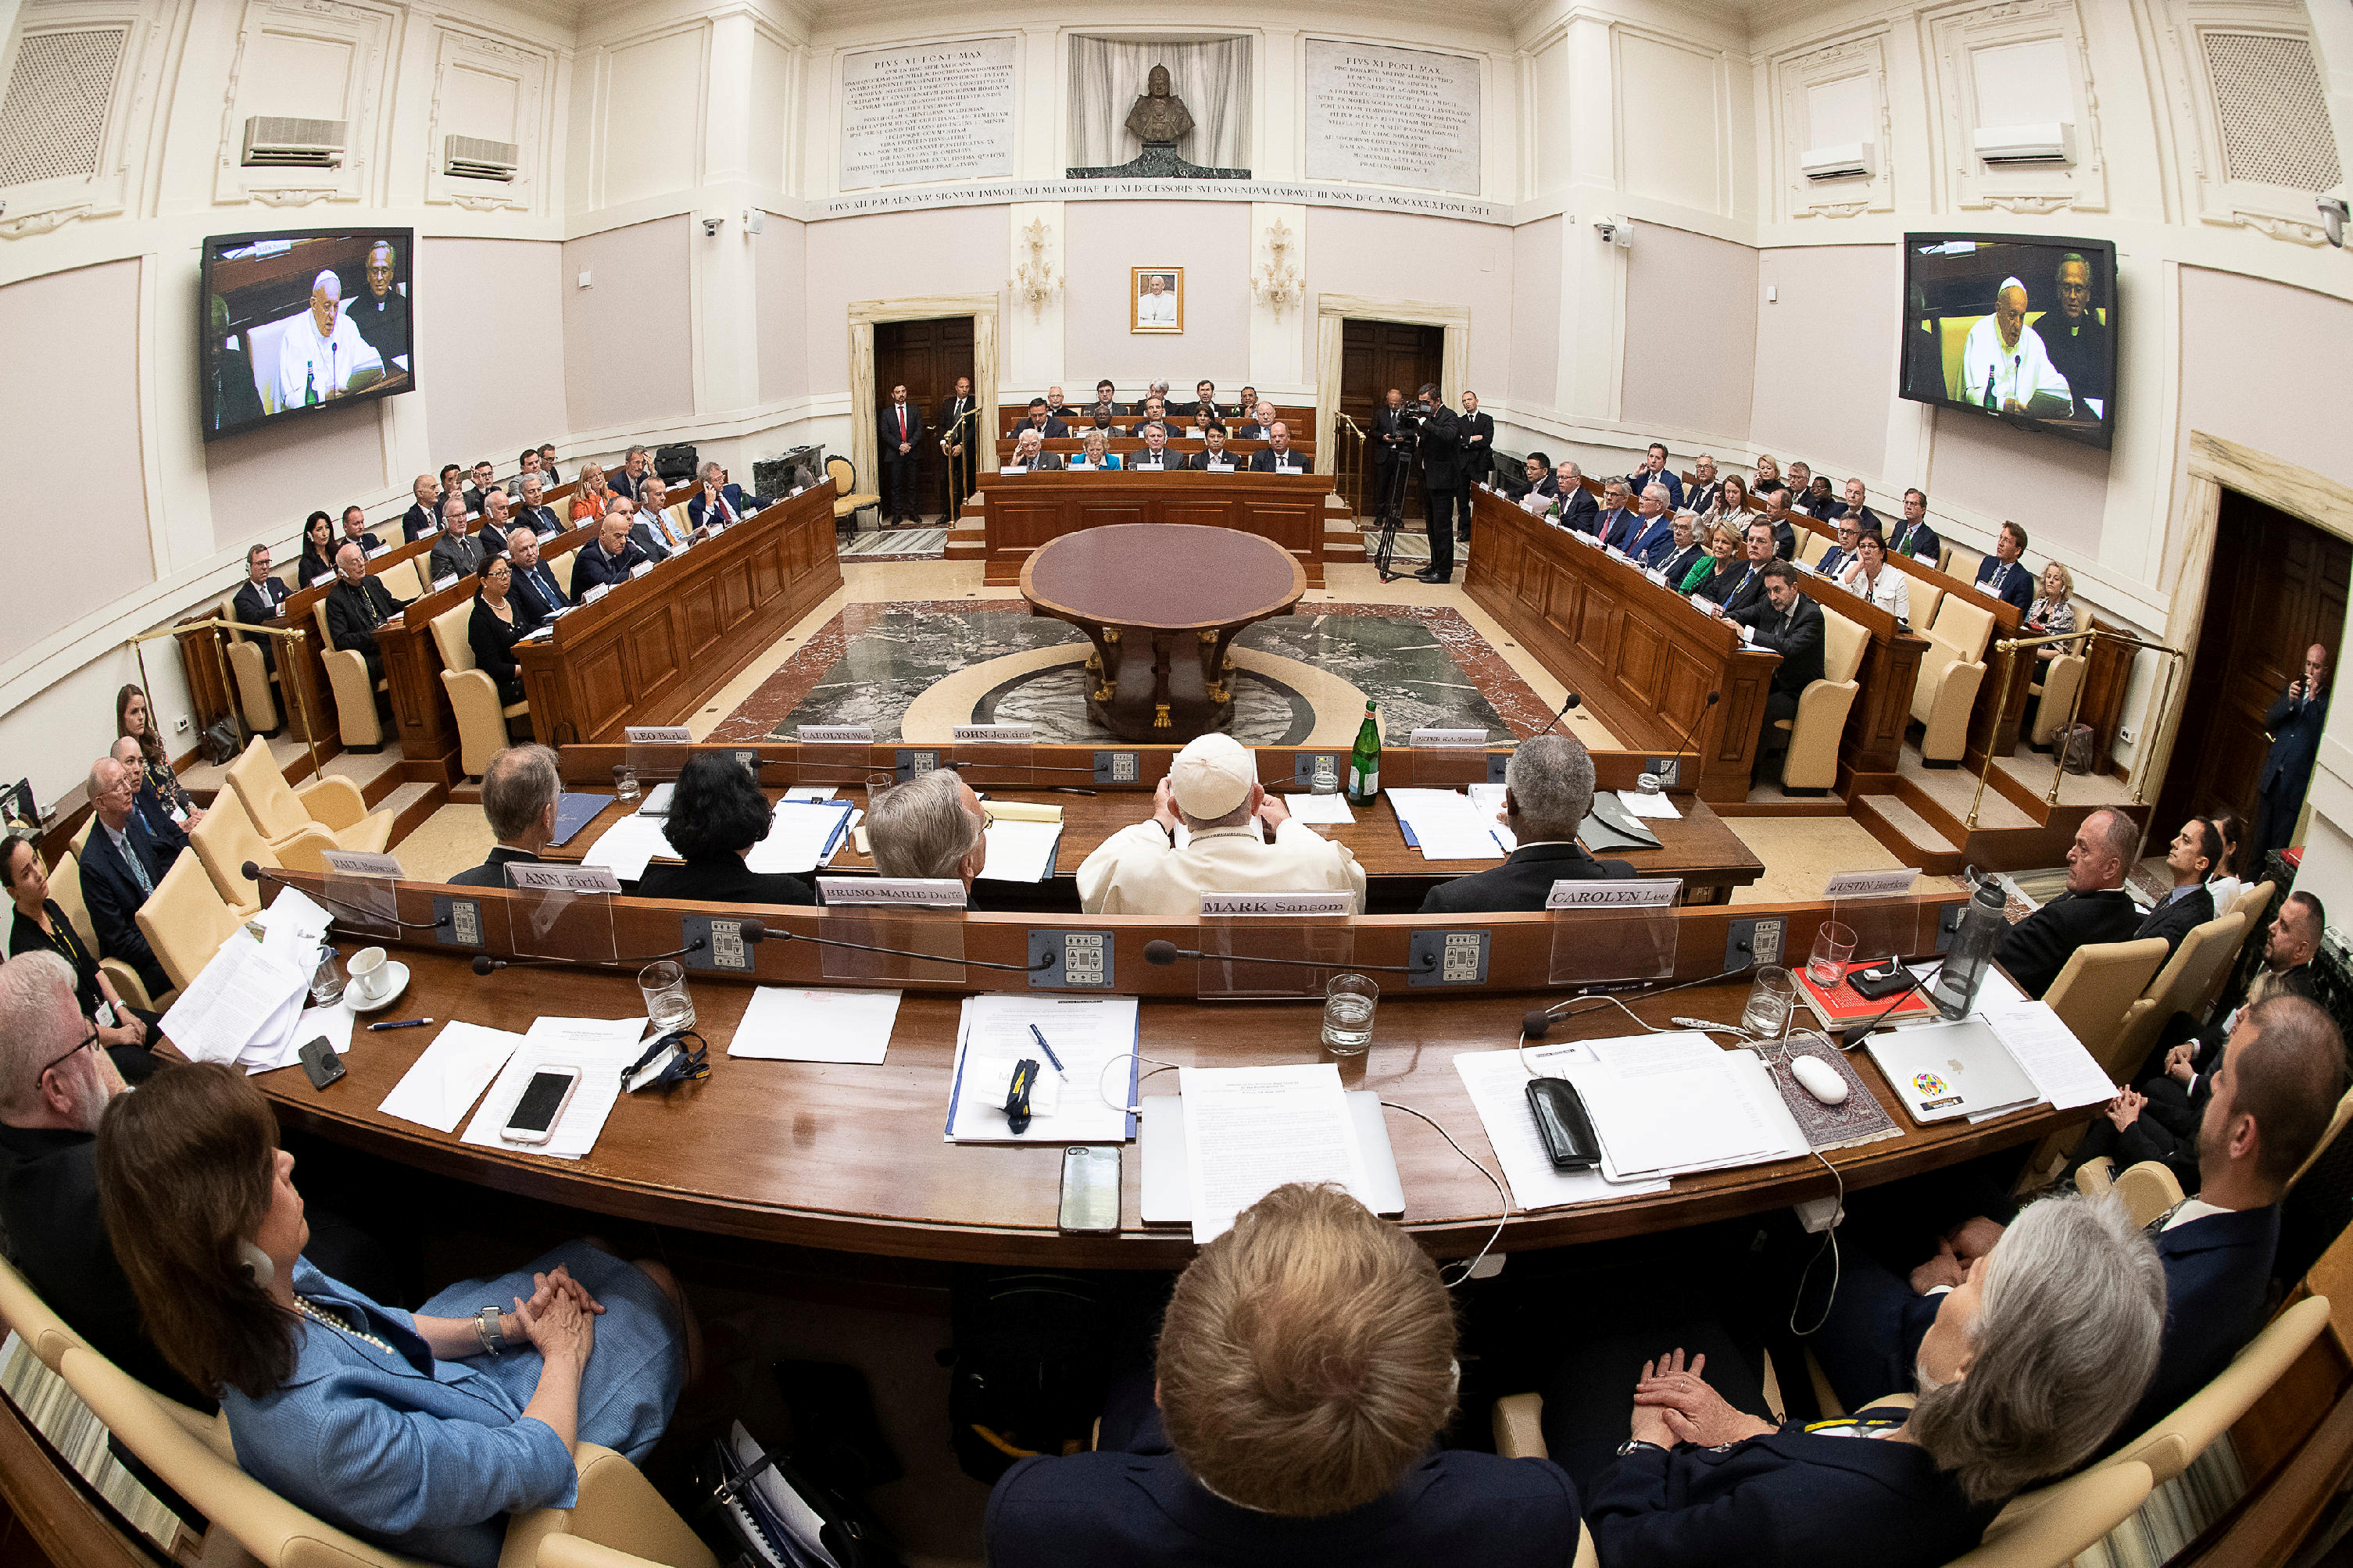 Pope Francis addresses energy representatives at the end of a two-day meeting at the Academy of Sciences, at the Vatican